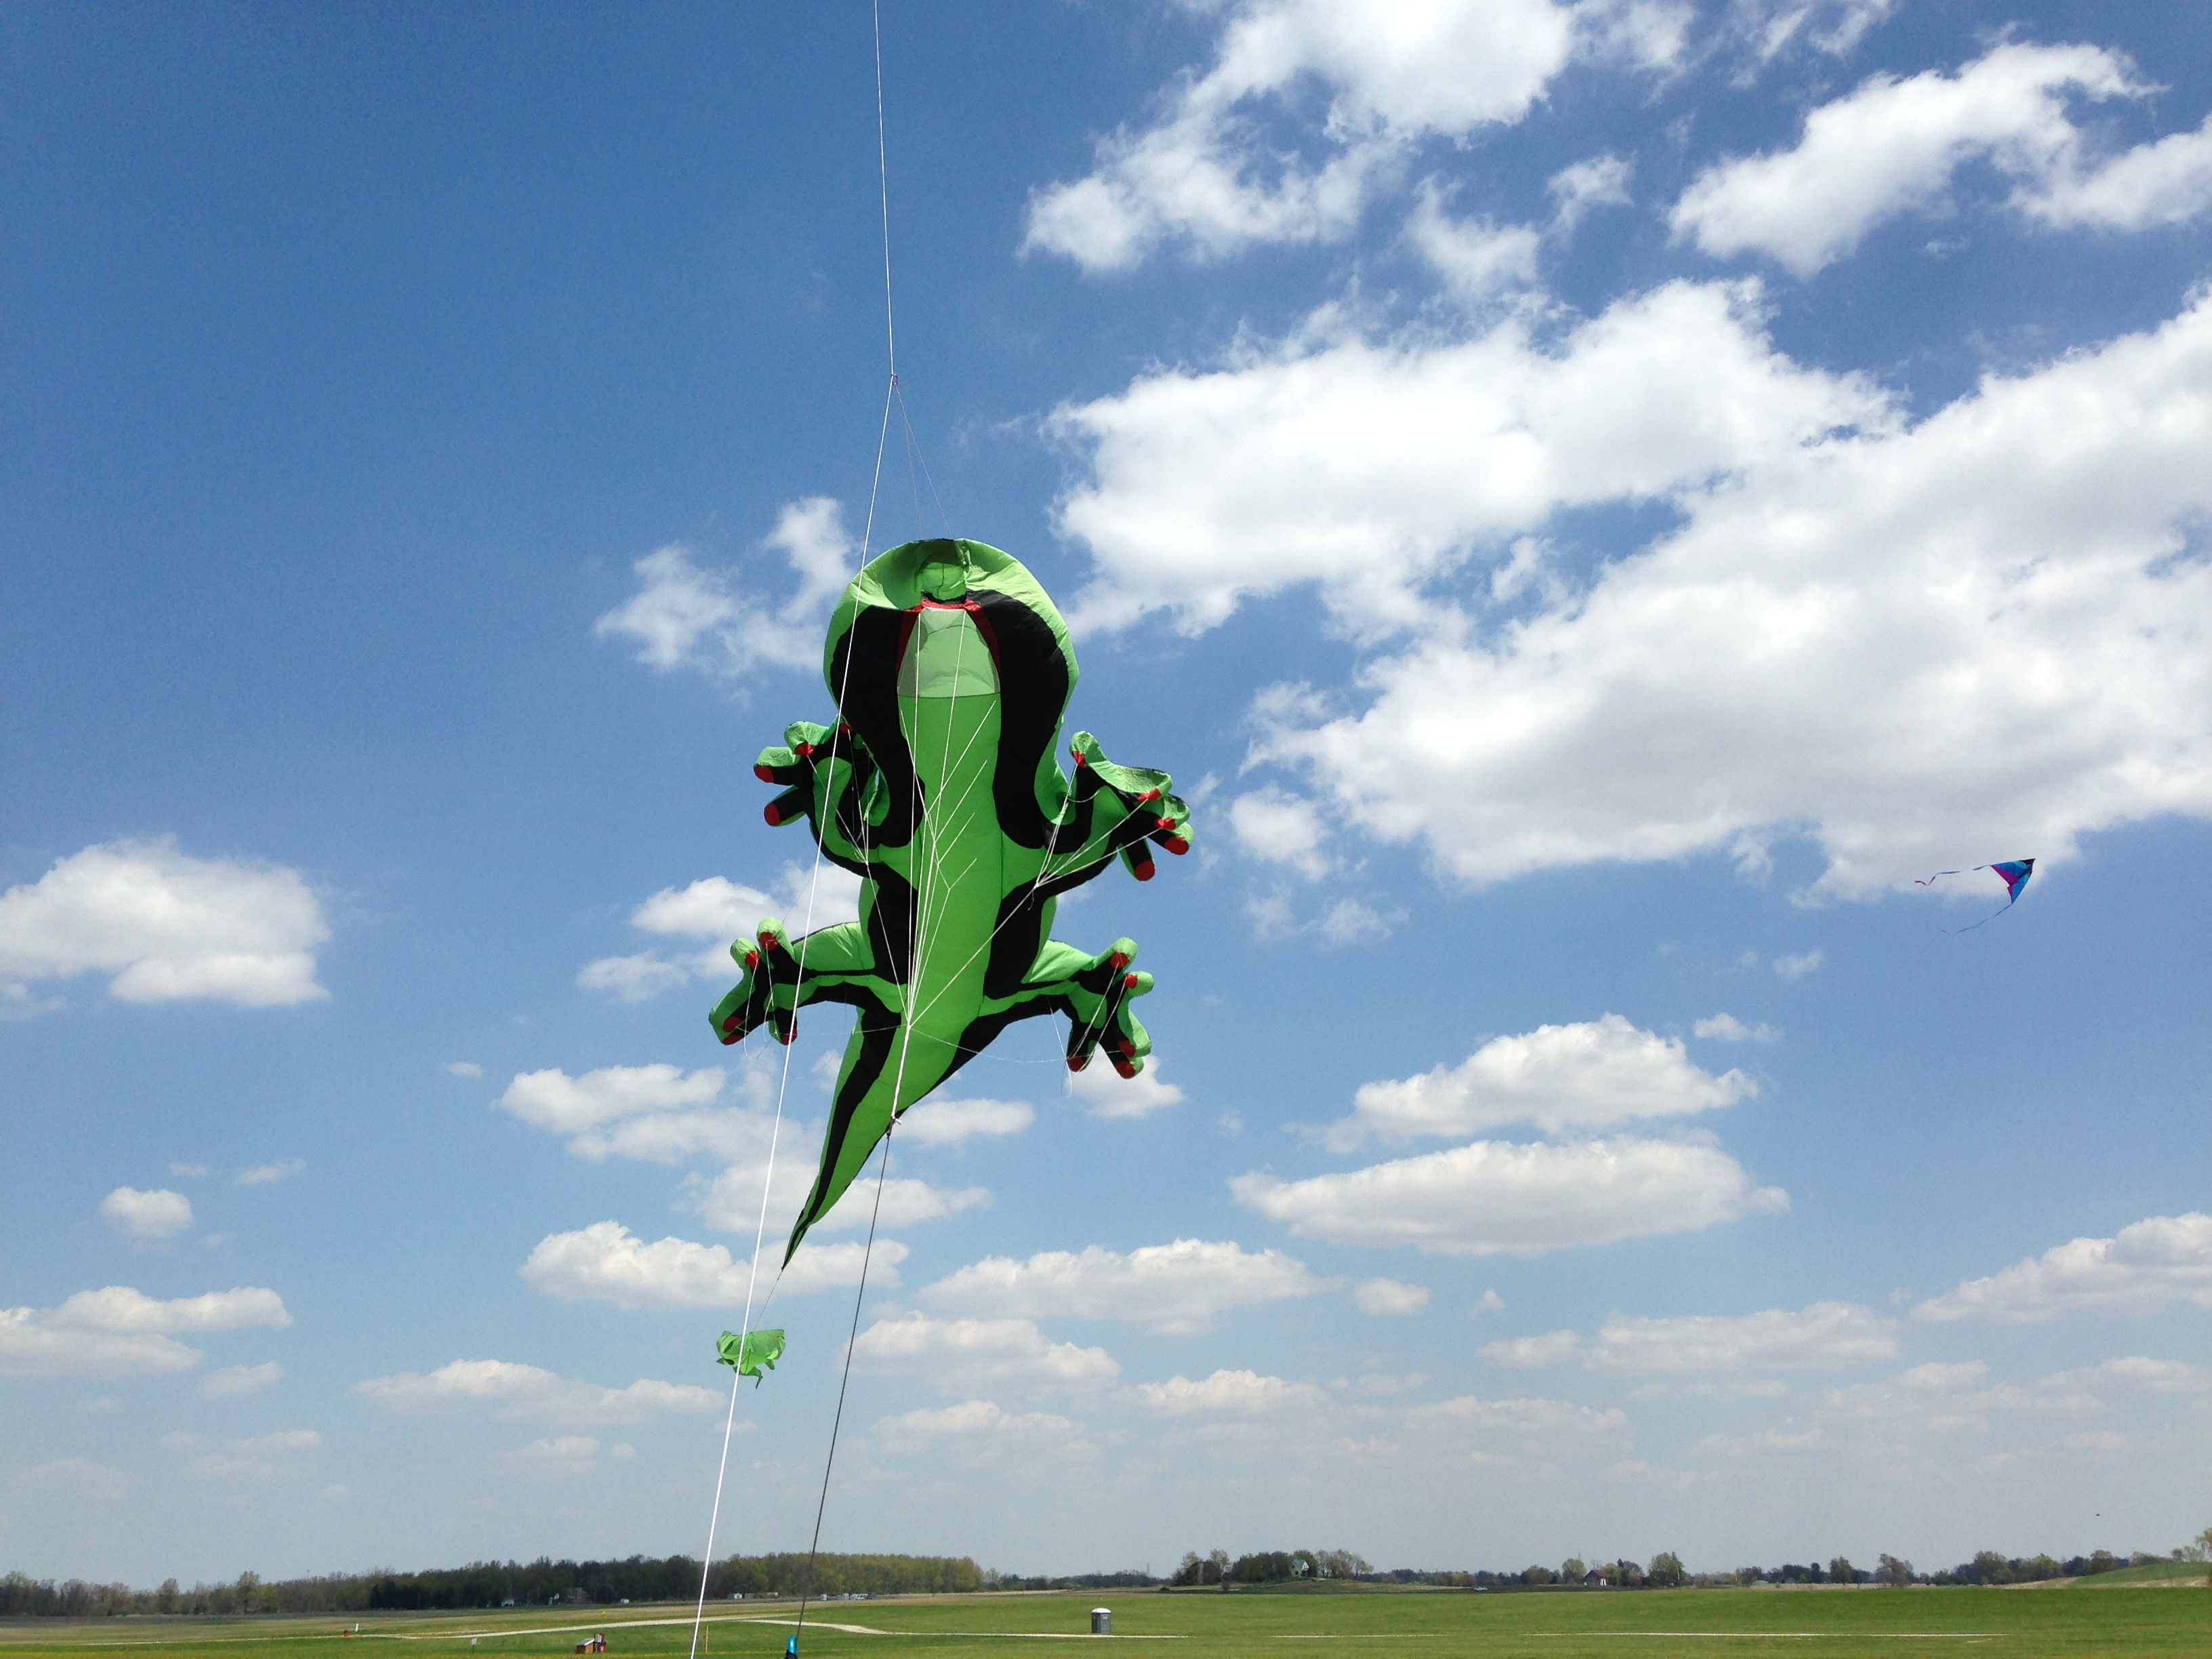 Gekko kite at Toney memorial fun fly